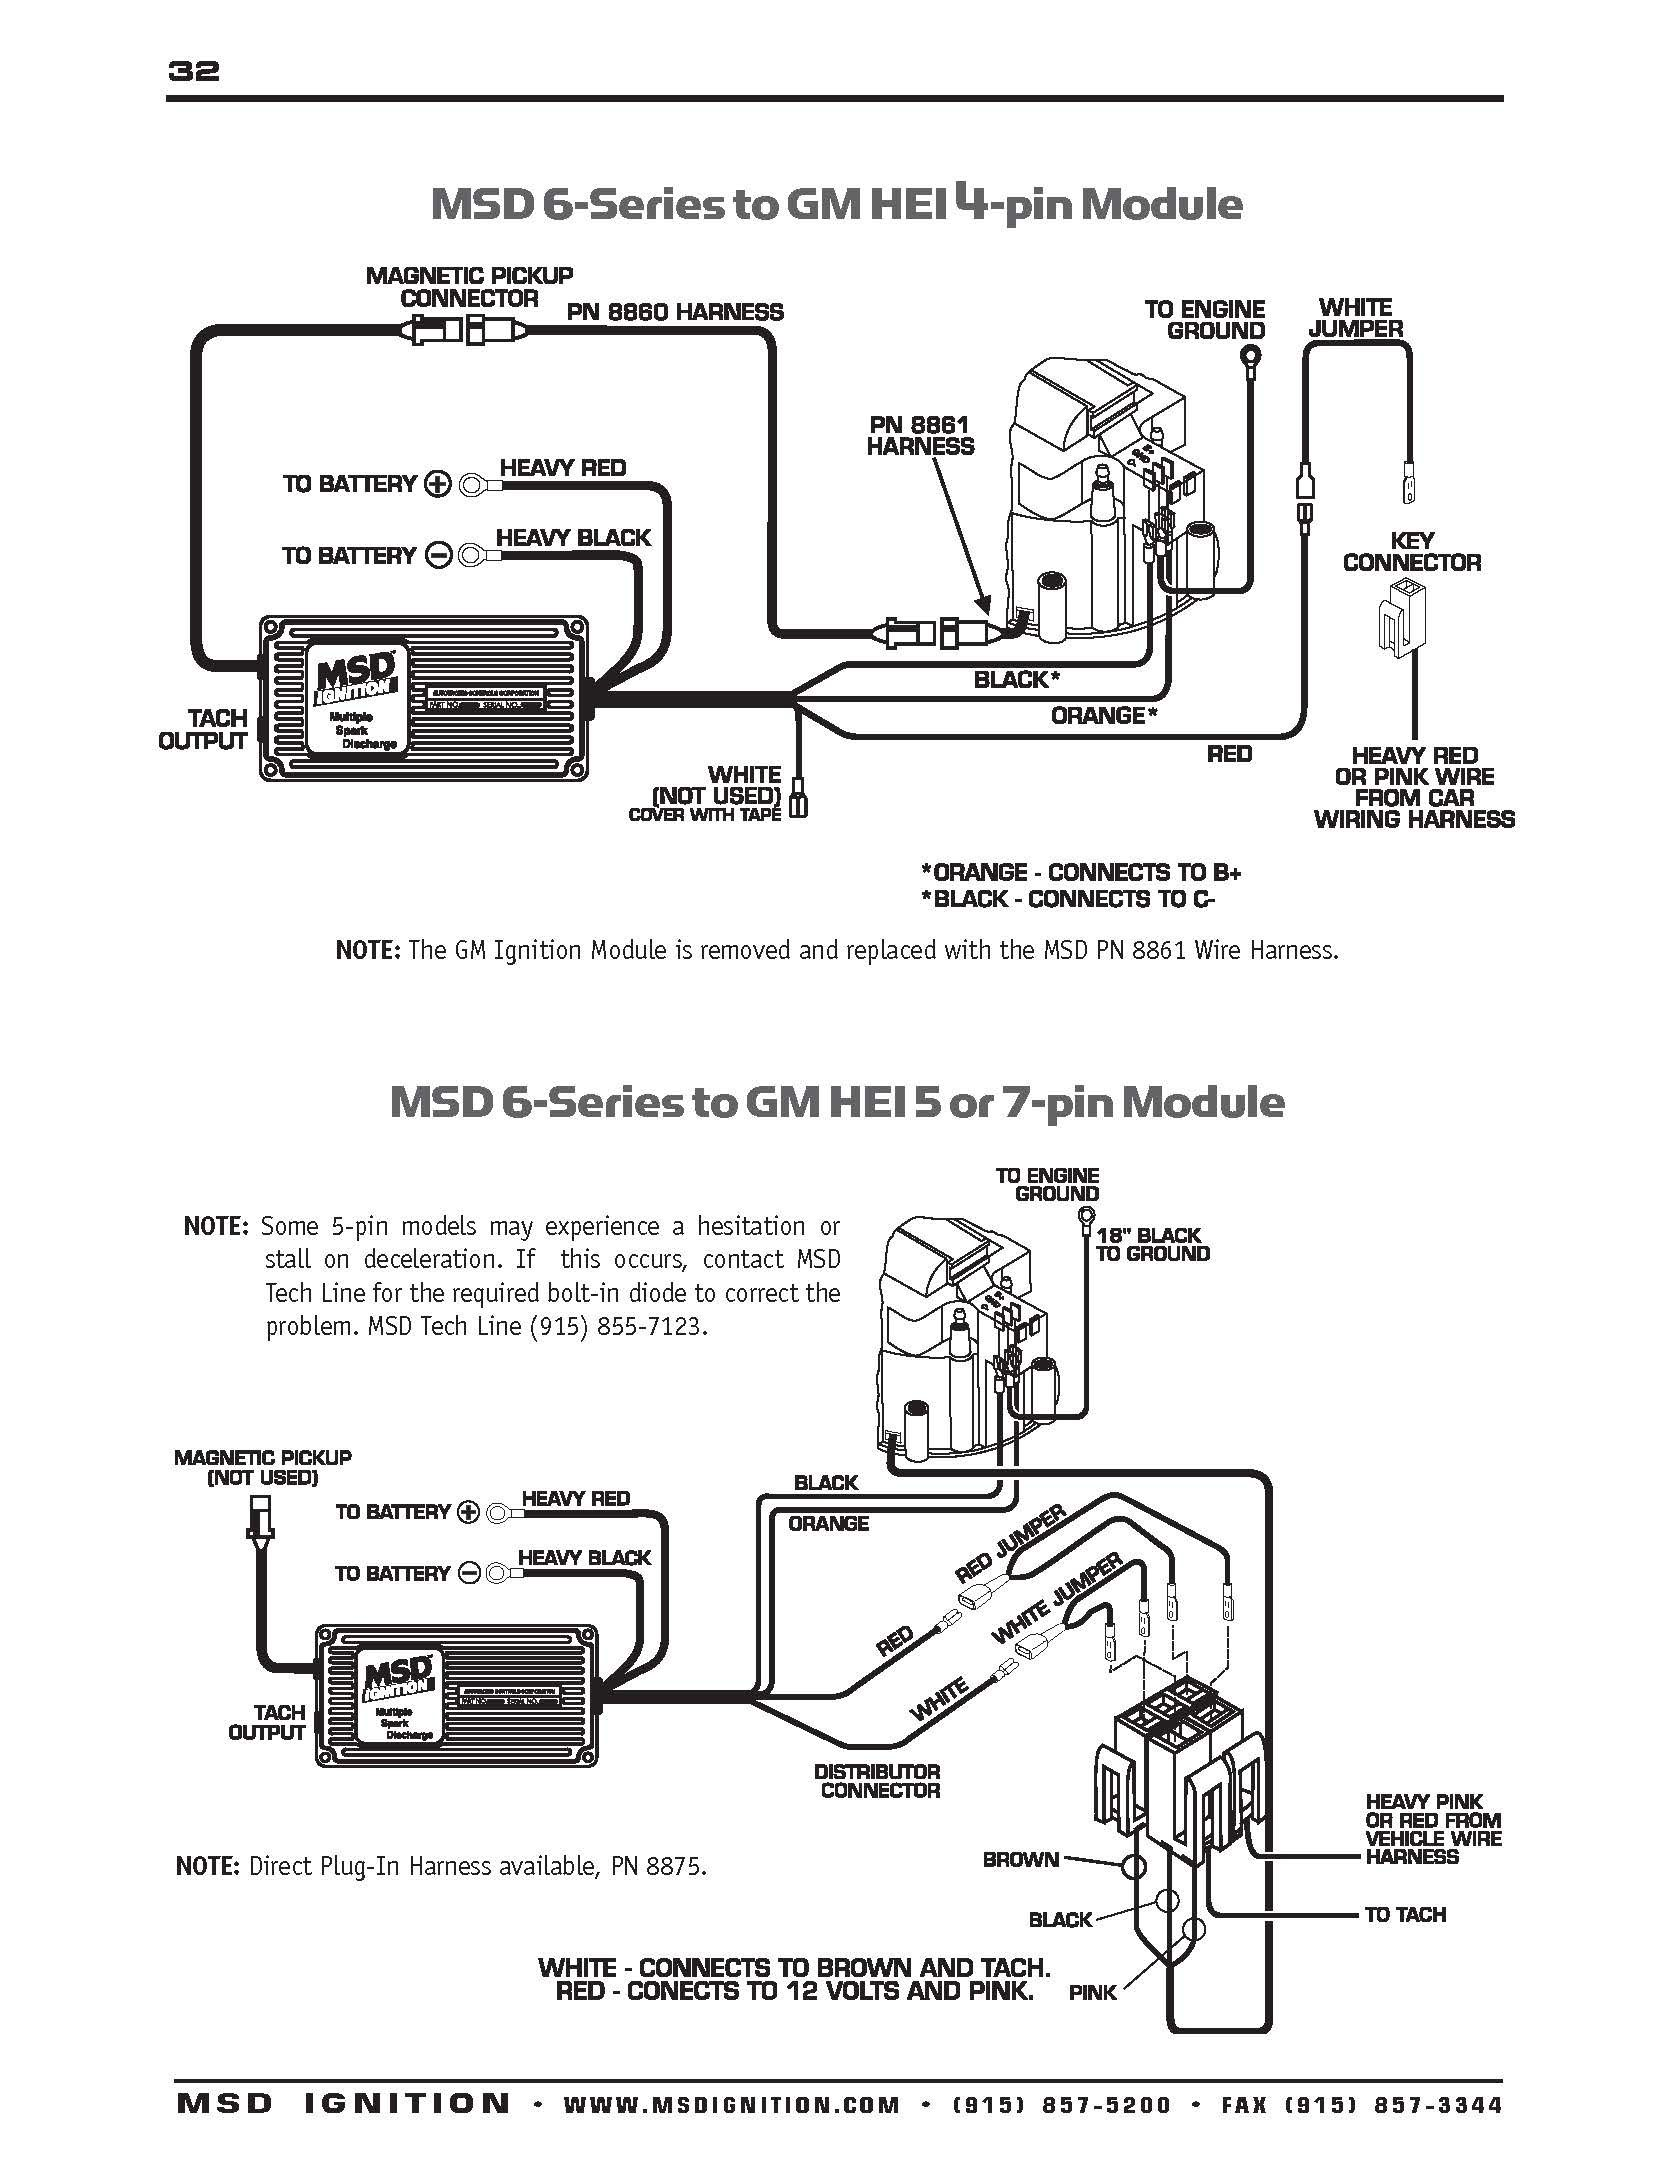 msd 6a 6200 wiring diagram 1969 mustang radio jeep all data ignition as well besides